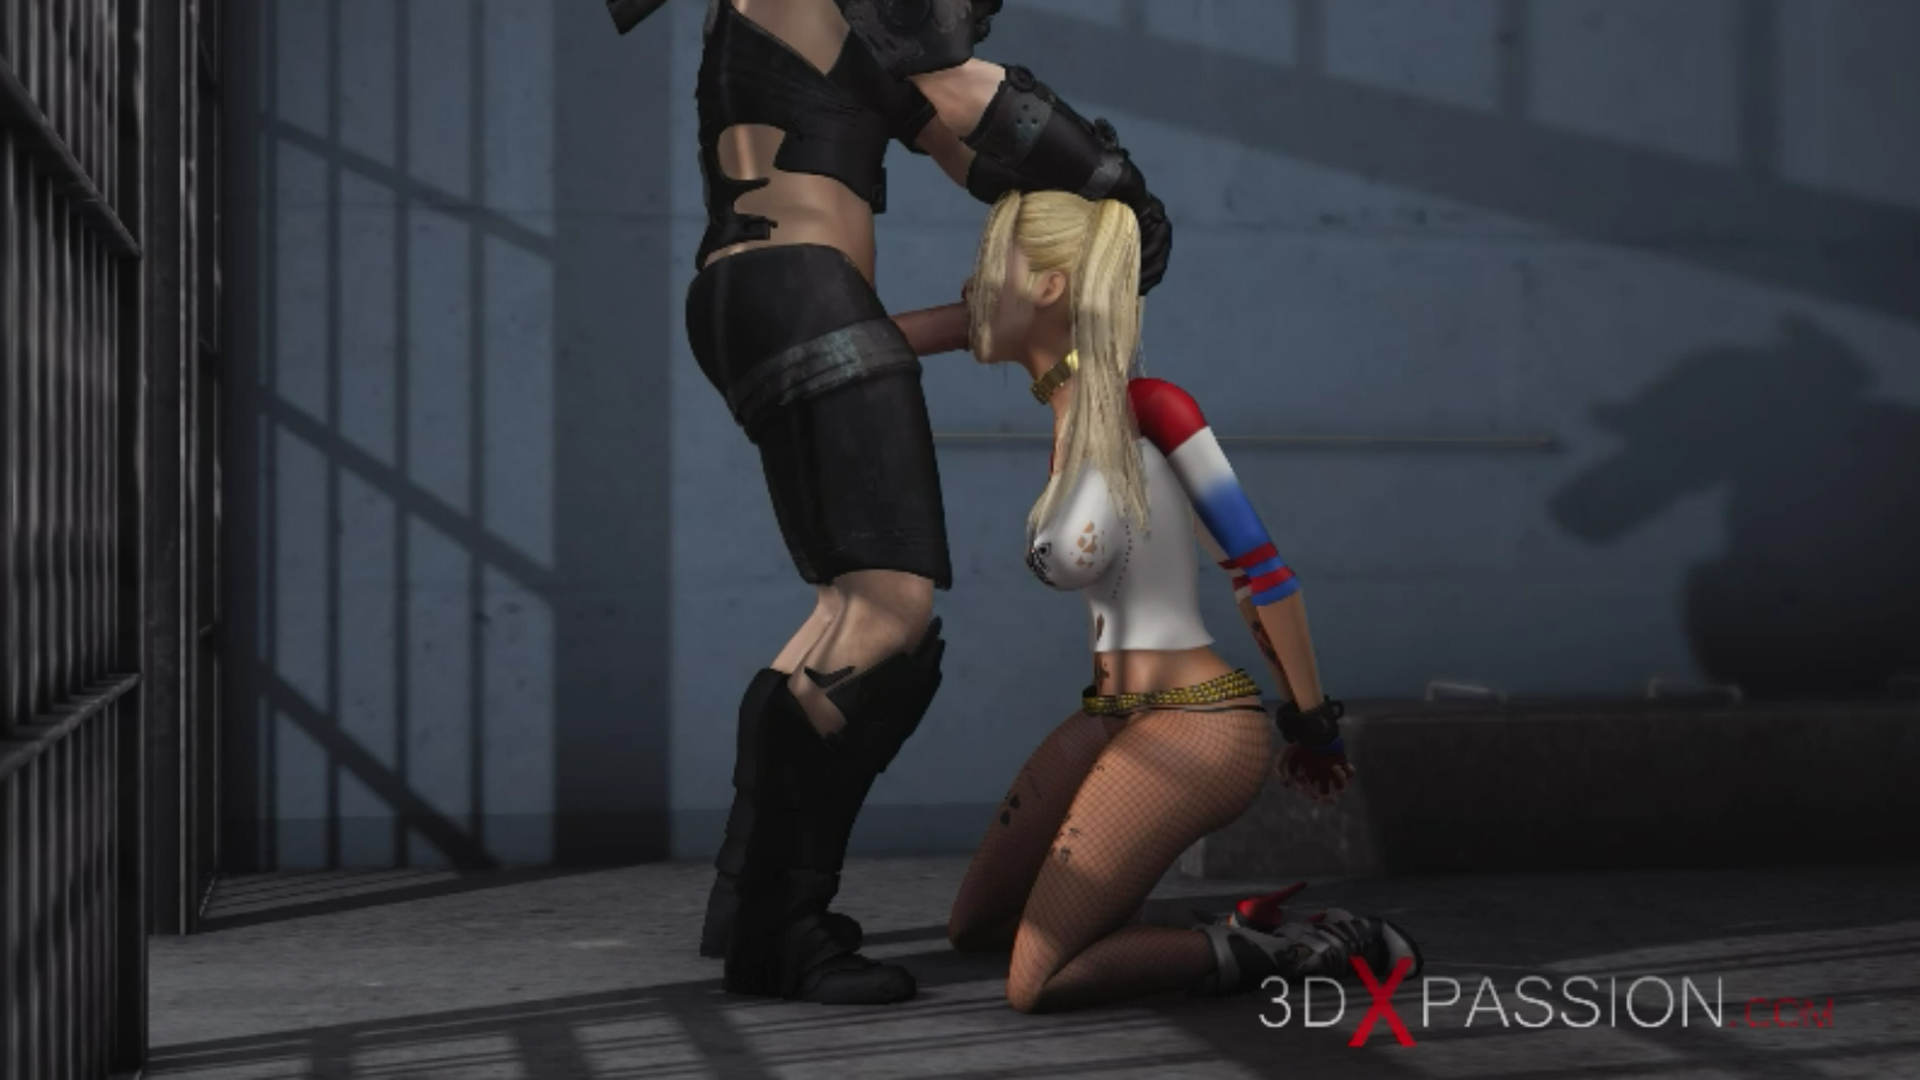 Batman fucks hard Harley Quinn in jail giving extreme blowjob